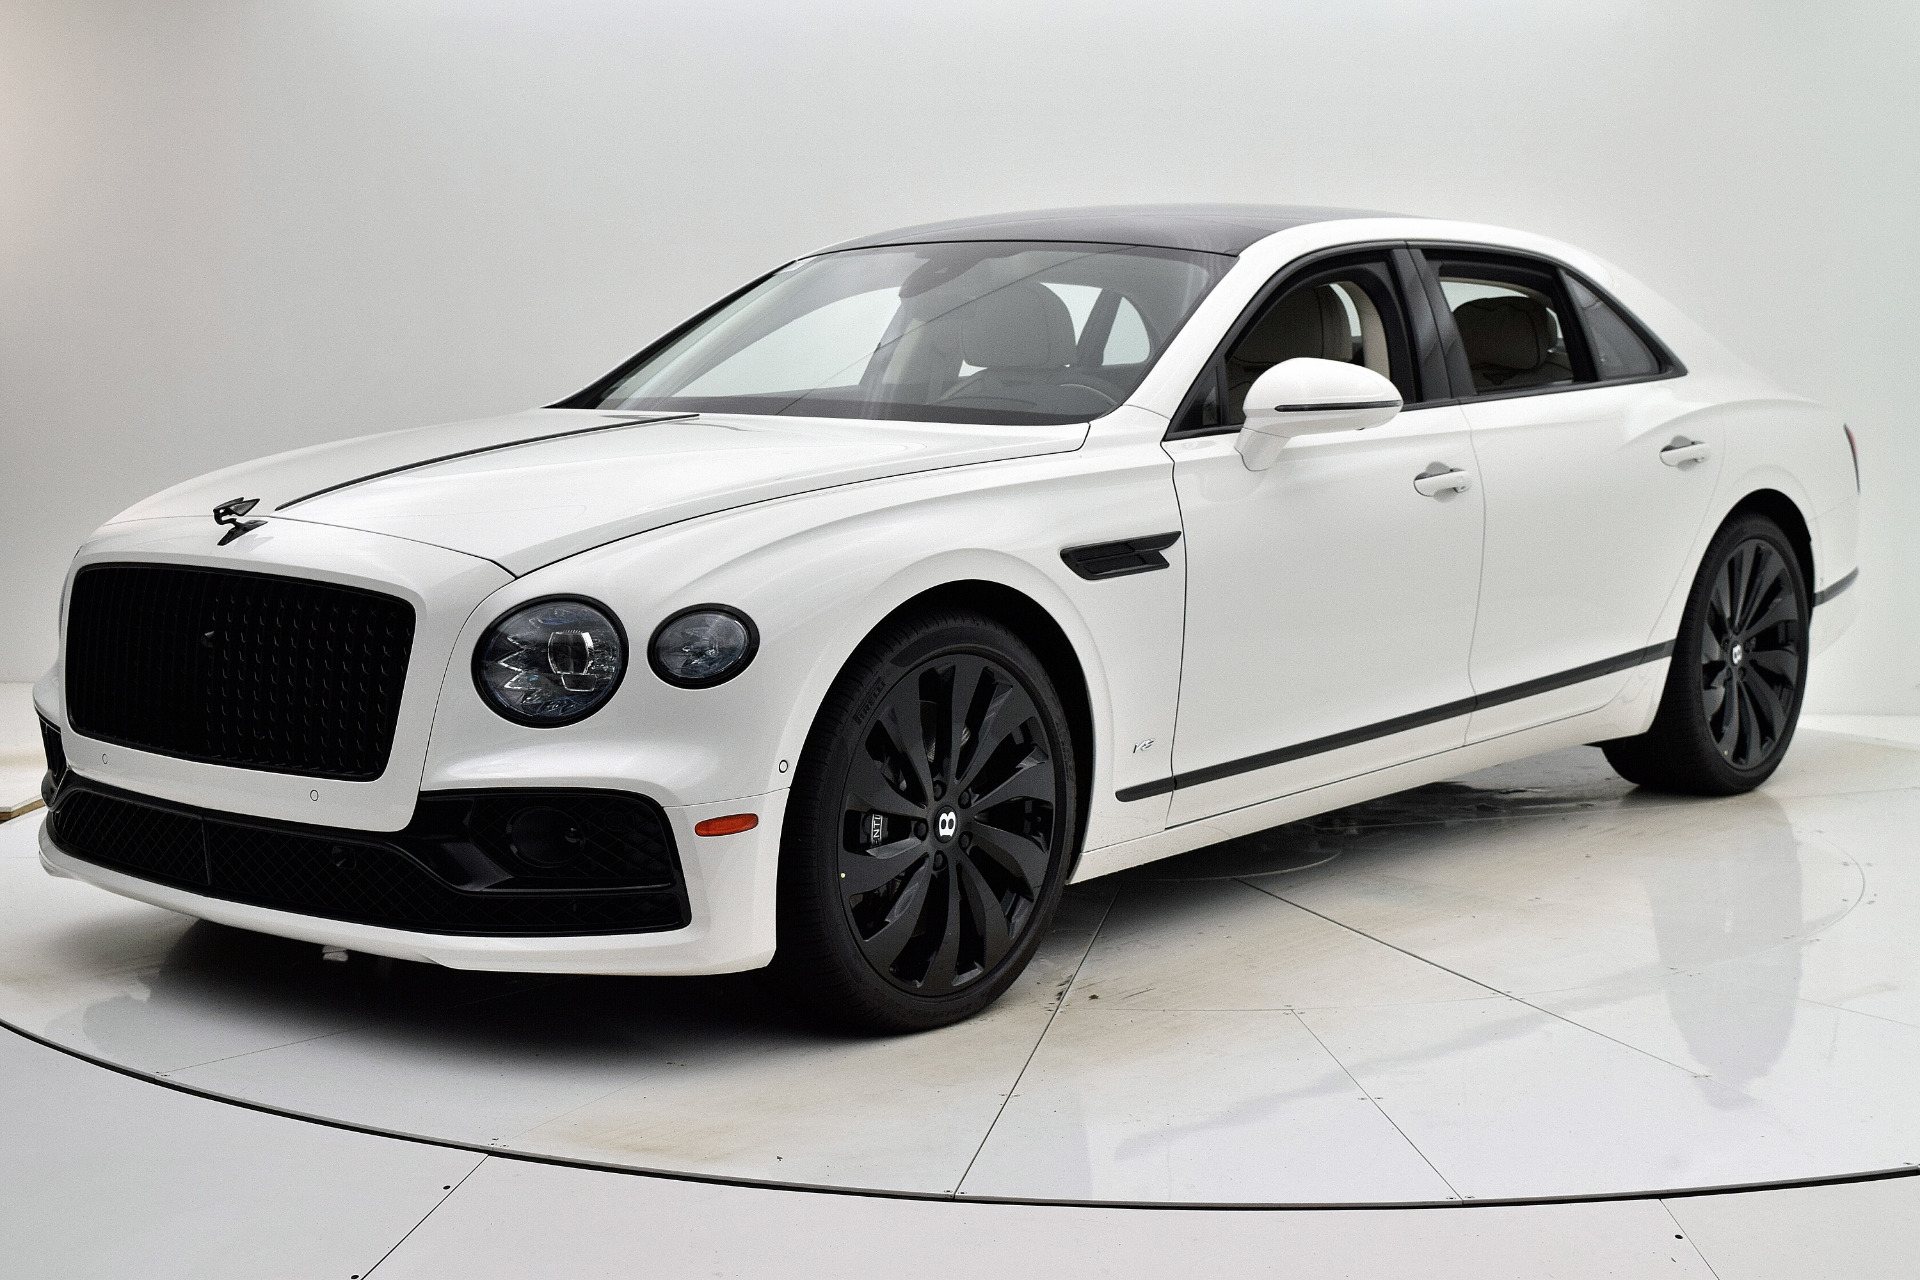 New 2022 Bentley Flying Spur V8 for sale Sold at Bentley Palmyra N.J. in Palmyra NJ 08065 2